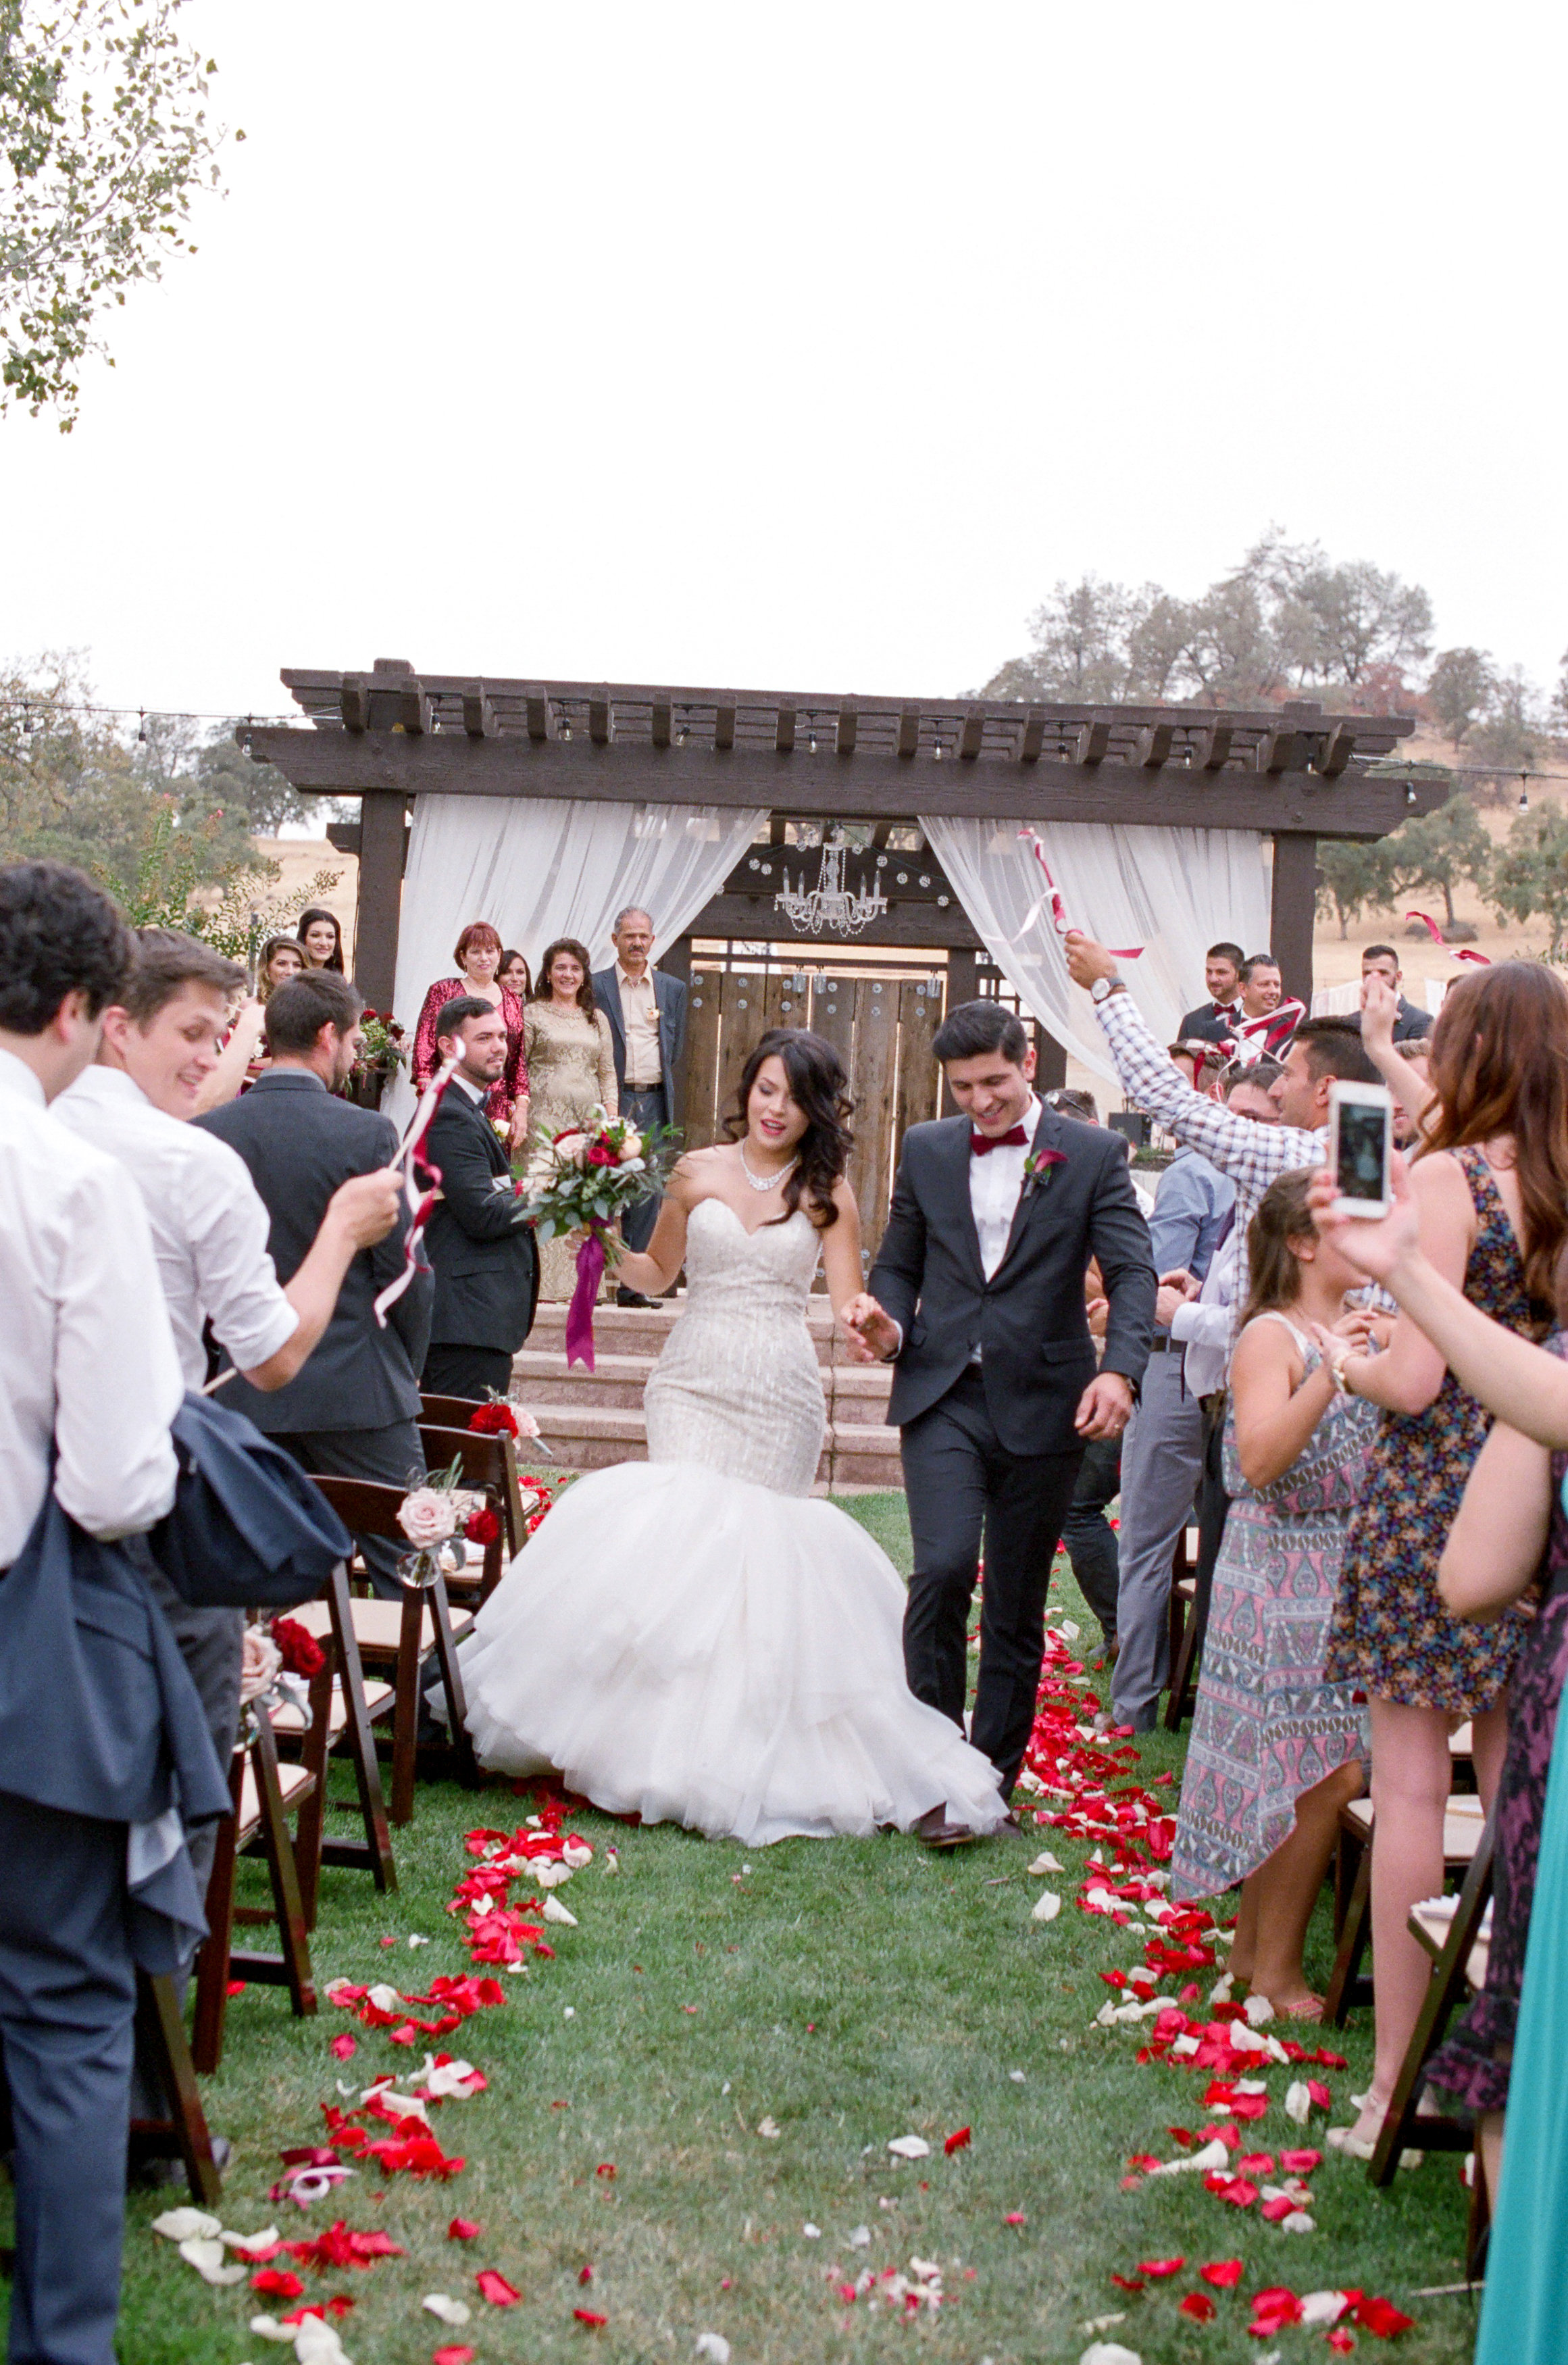 Amador_County_Wedding_Ceremony_Just_Married_Rancho_Victoria_Vineyard_Northern_California.jpg